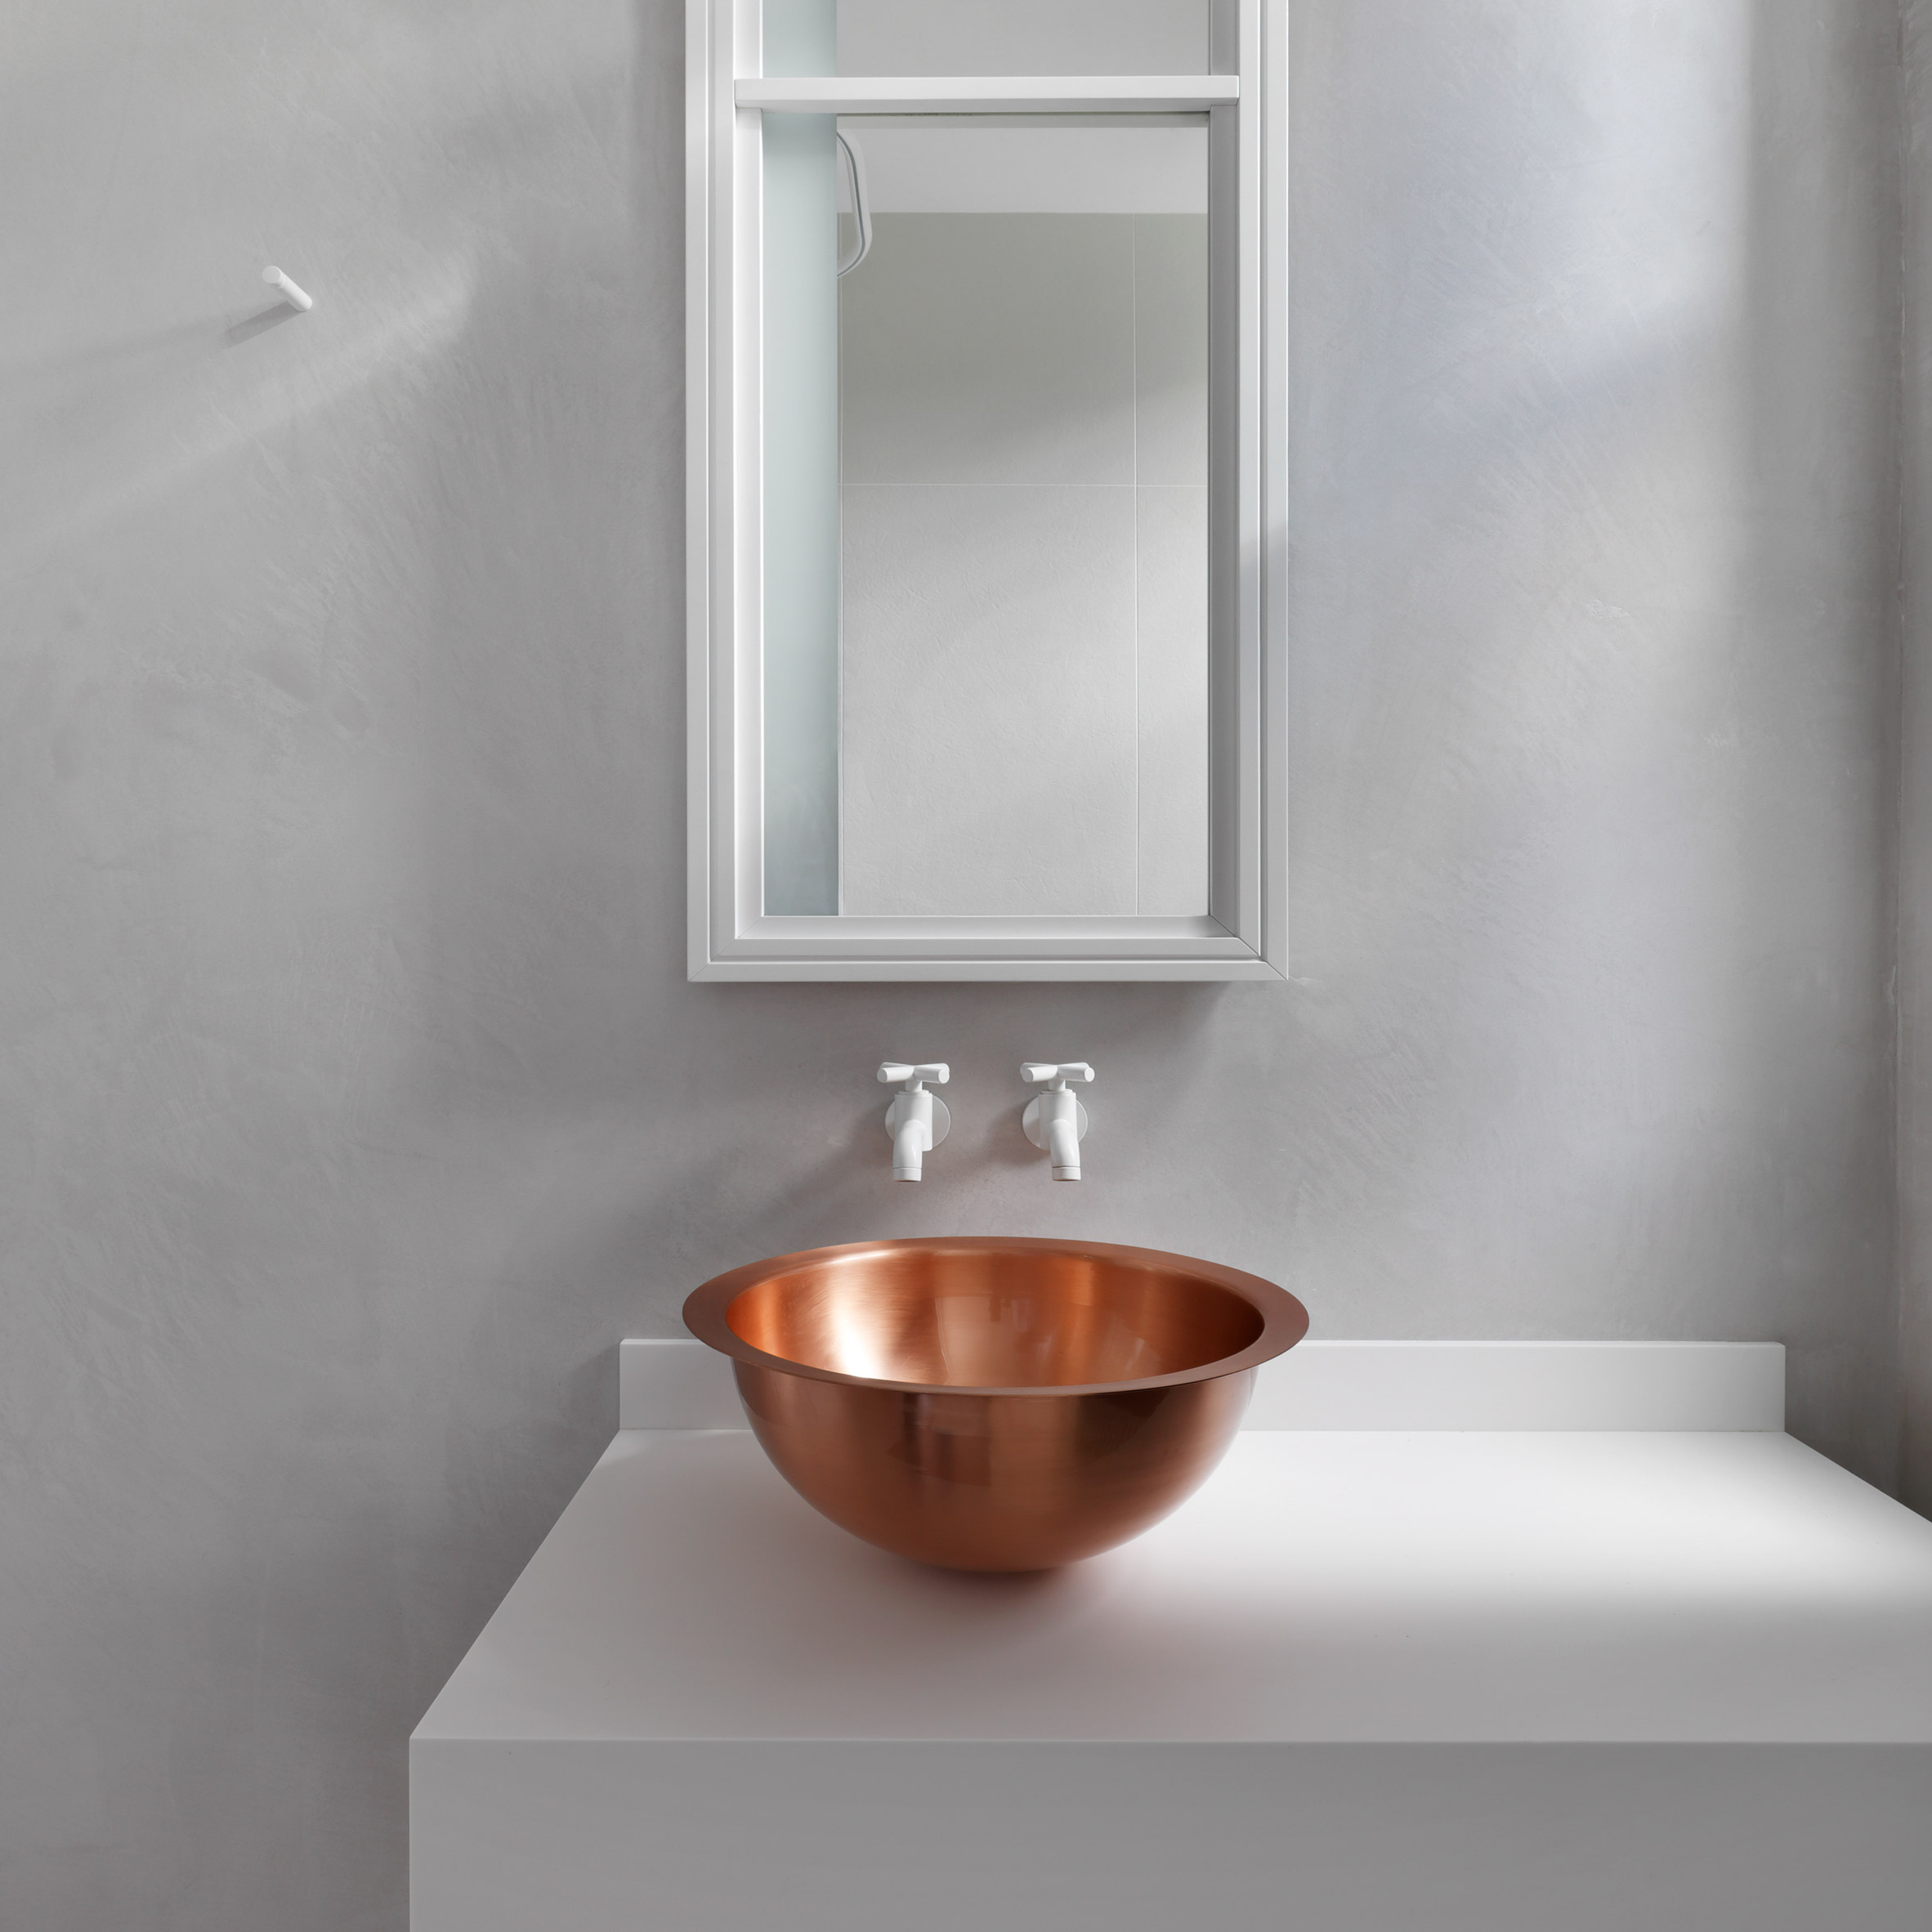 10 minimalist bathrooms that have barely anything in them. Bathroom products and interior design   Dezeen